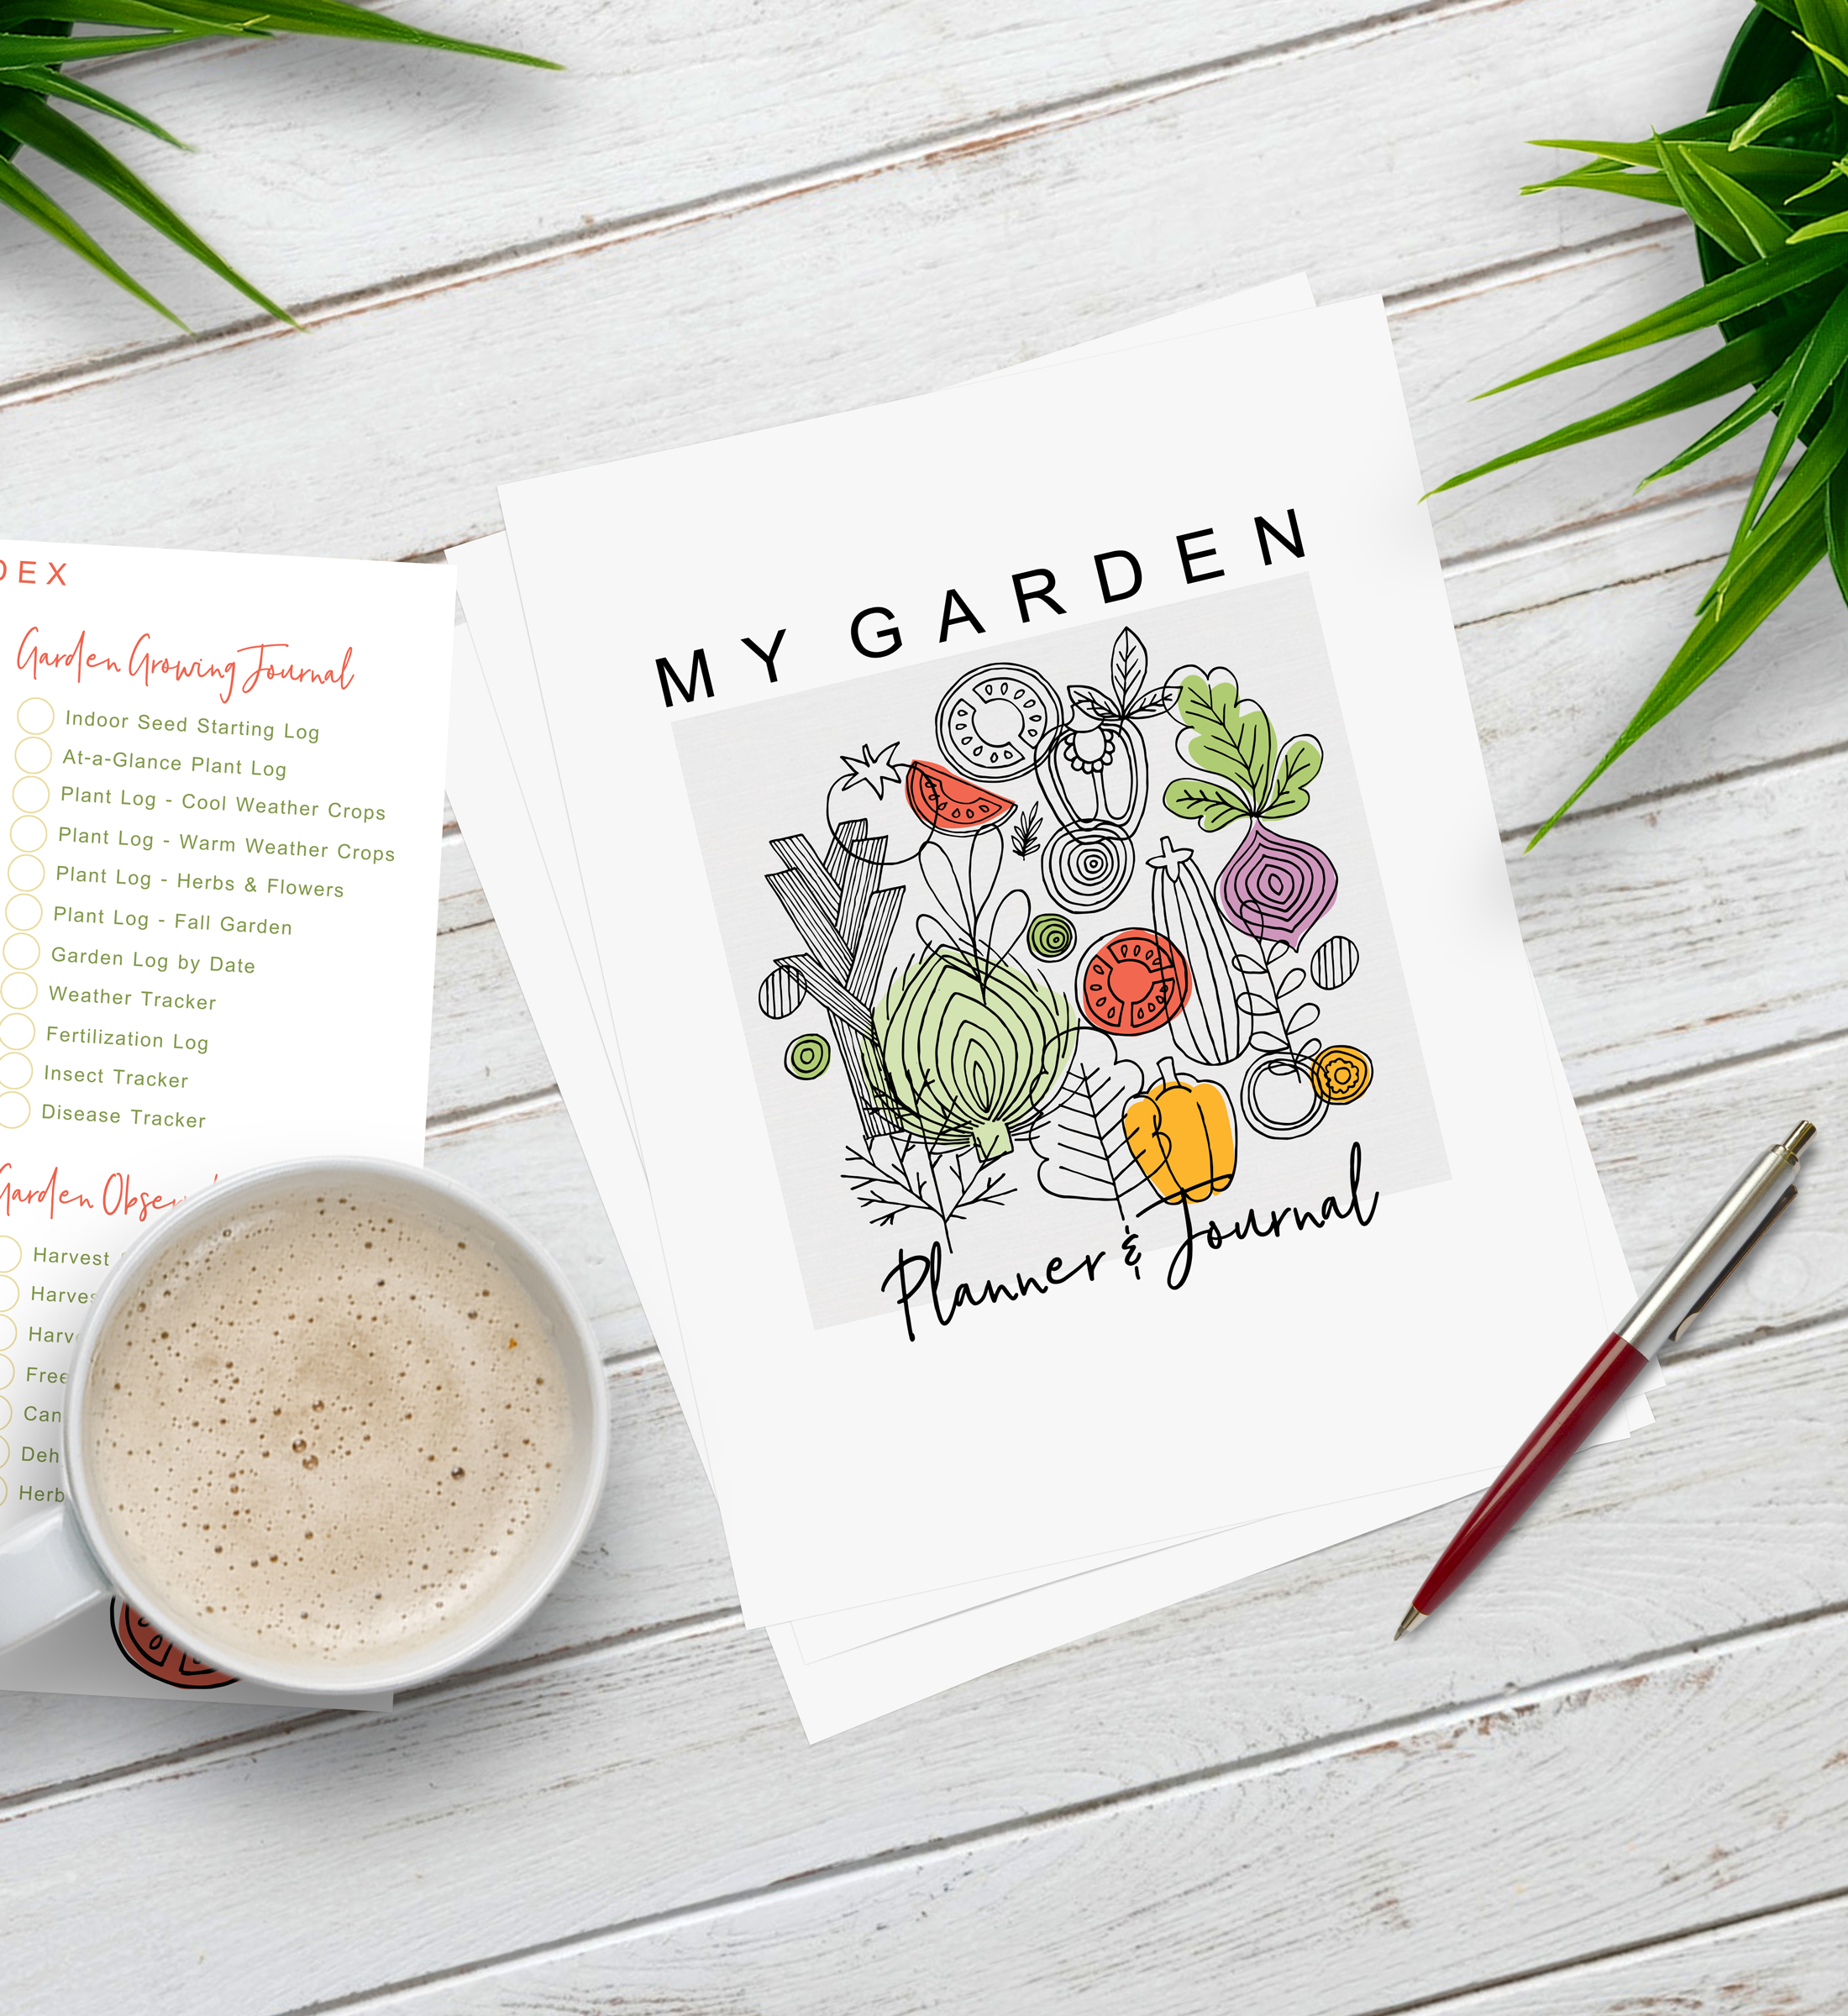 New! 2021 Complete Garden Planner & Journal Printable